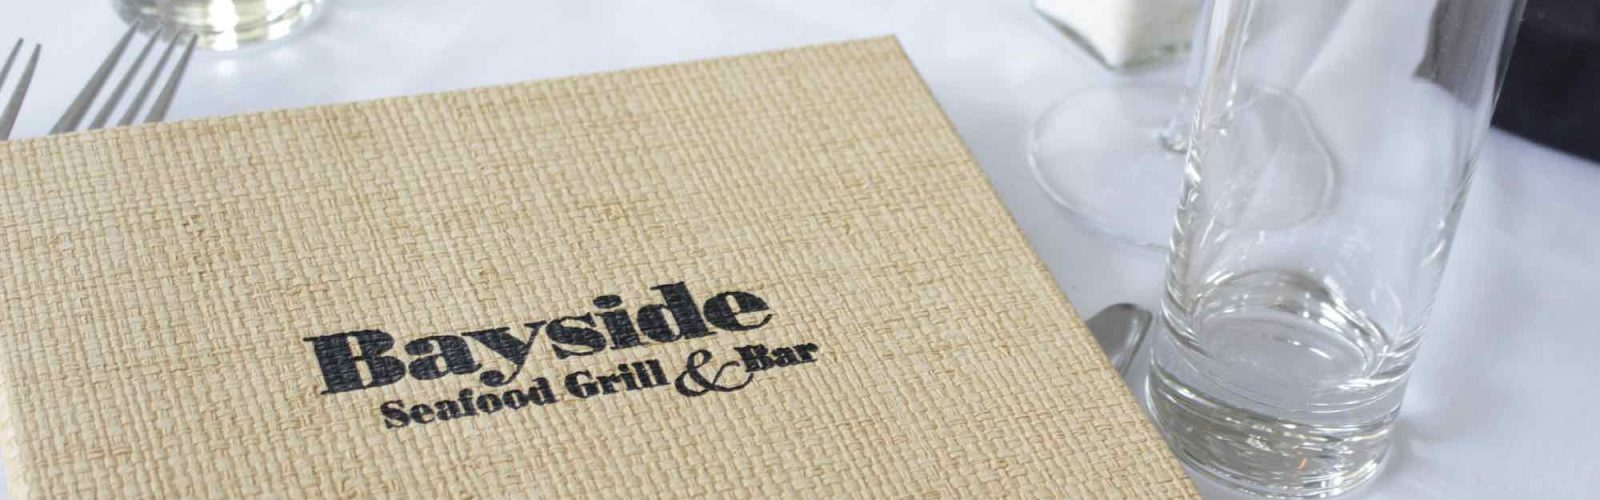 Bayside Grill dinner menu on table